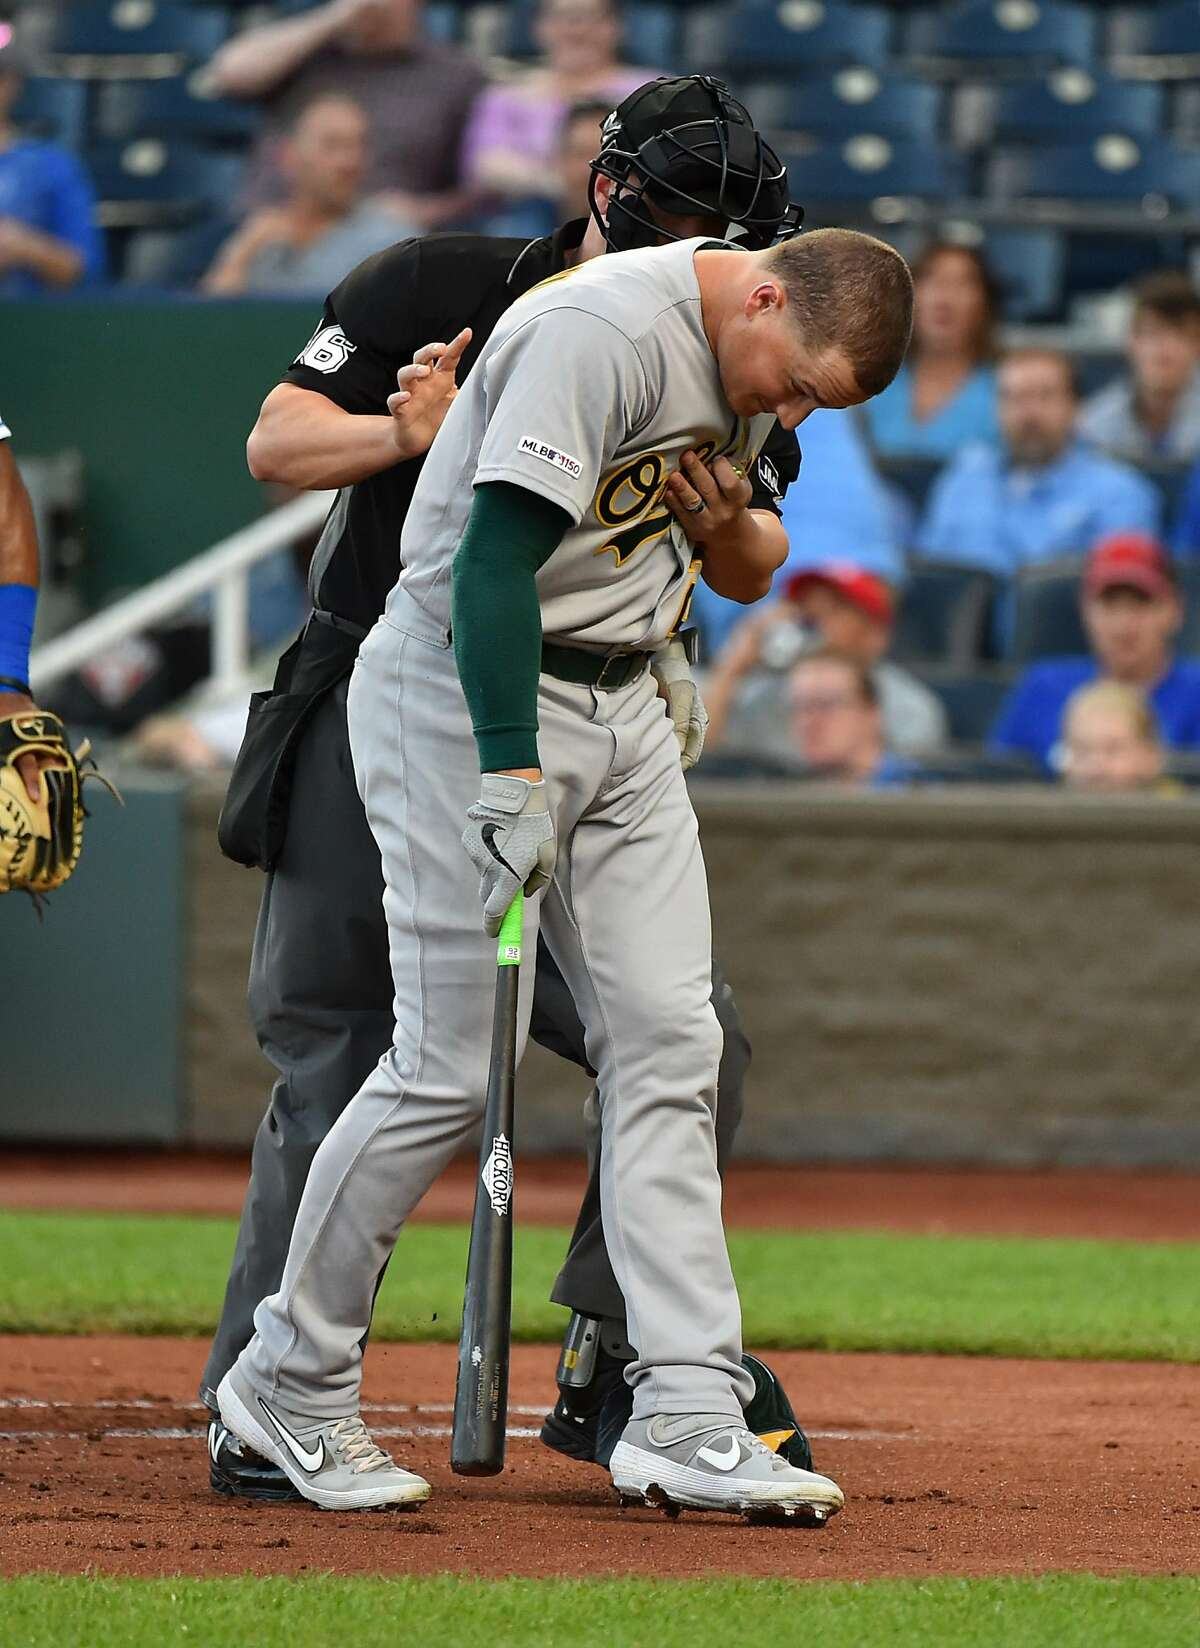 KANSAS CITY, MISSOURI - AUGUST 28: Matt Chapman #26 of the Oakland Athletics is helped by plate umpire Chris Segal after he was struck by a pitch thrown by starting pitcher Jakob Junis #65 of the Kansas City Royals in the first inning at Kauffman Stadium on August 28, 2019 in Kansas City, Missouri. (Photo by Ed Zurga/Getty Images)